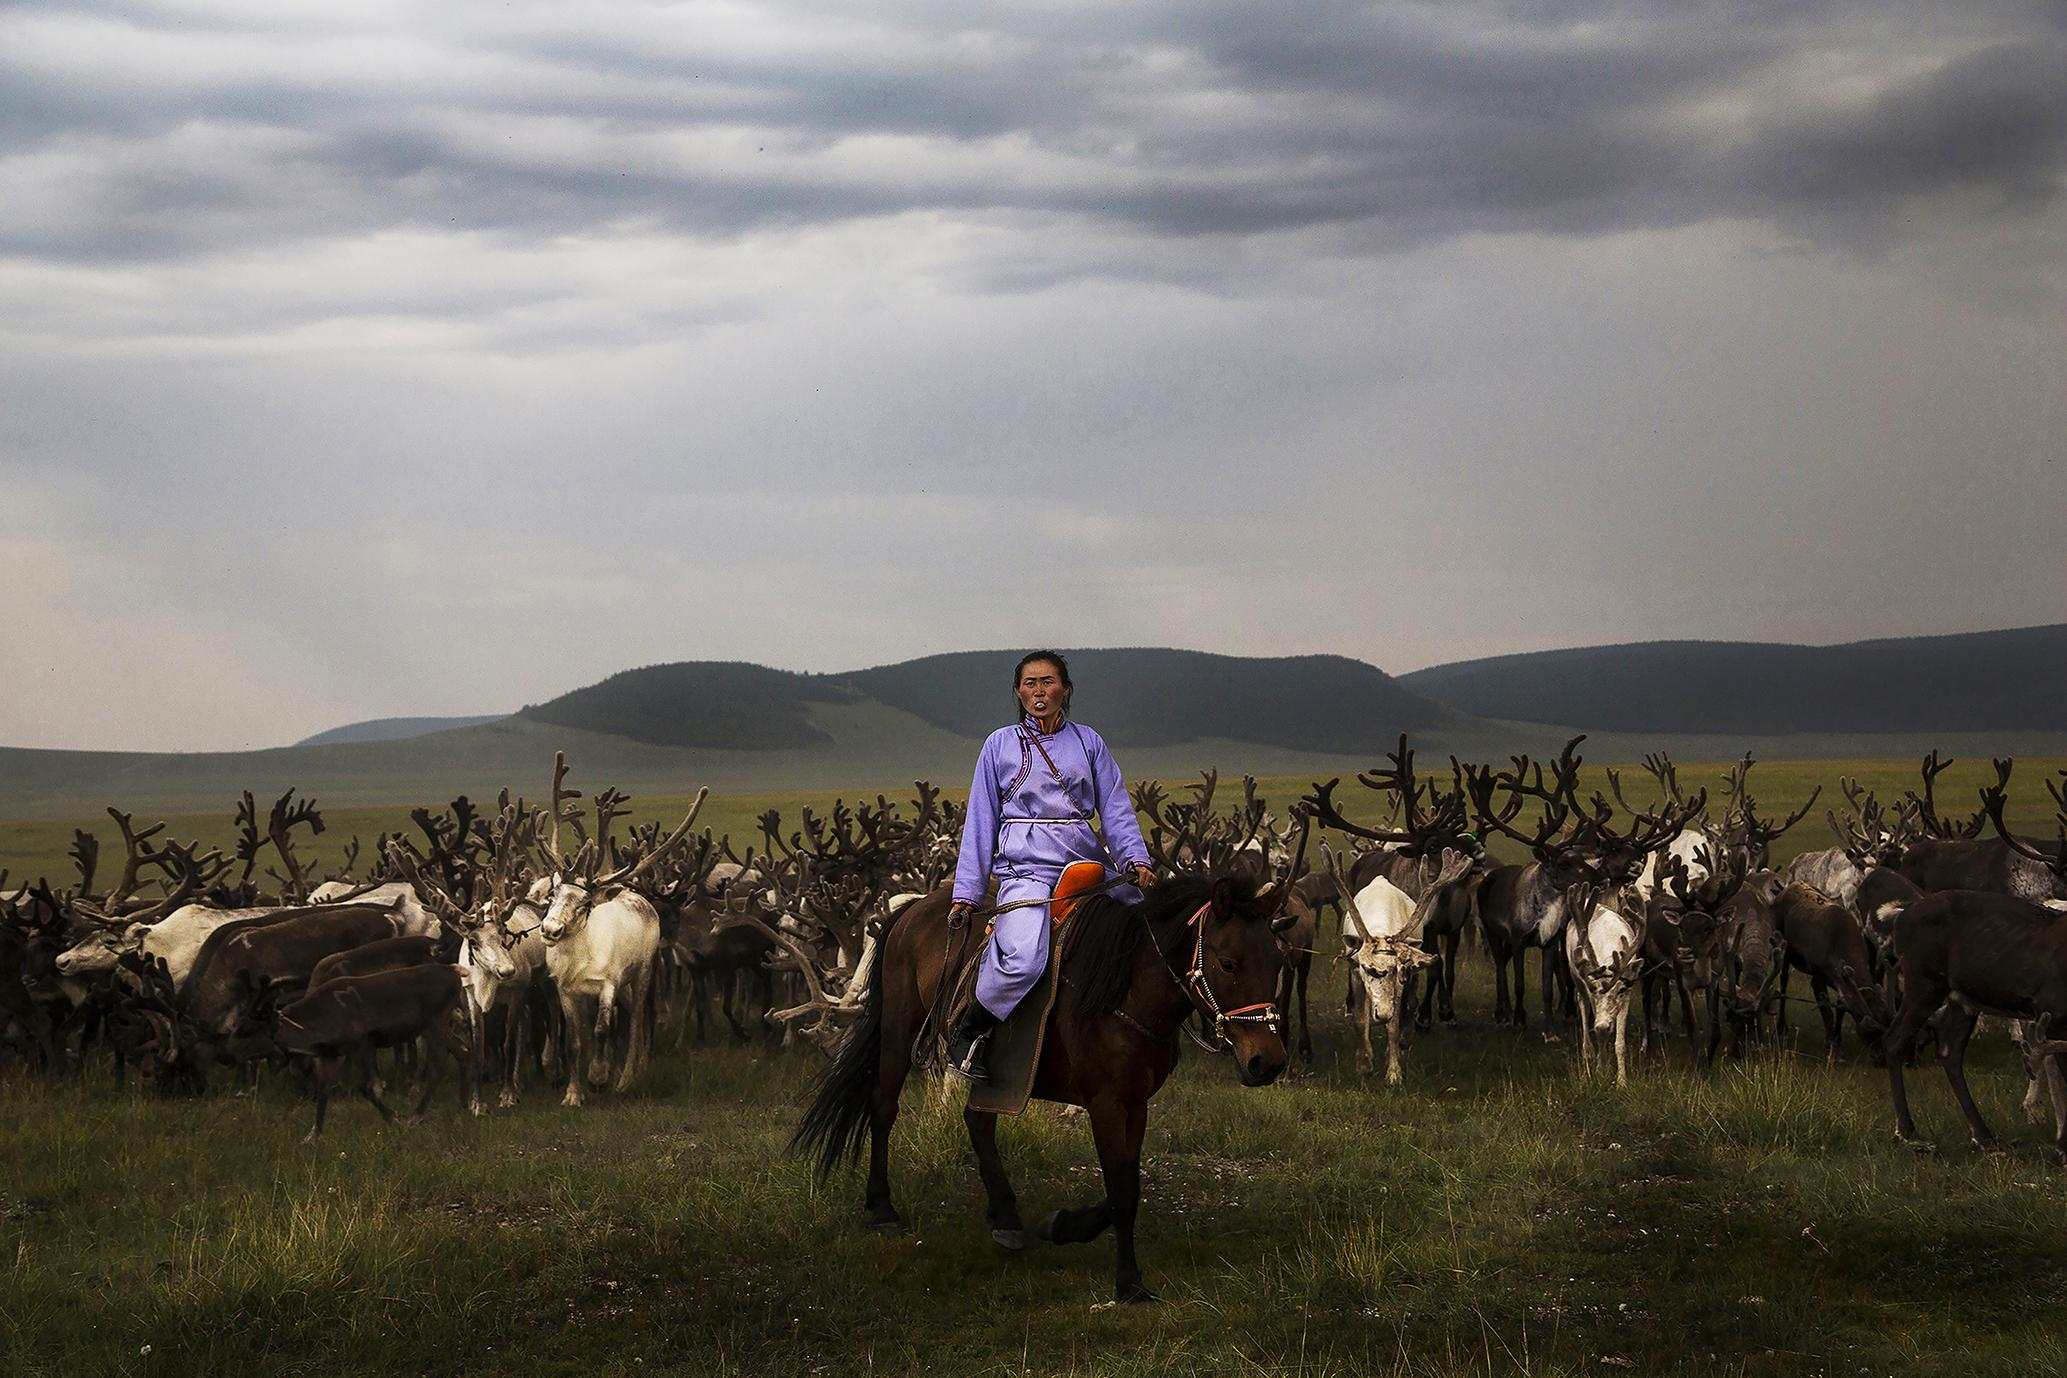 A Tsaatan woman herding her reindeer during the Naadam festivities near the Lake Tsagaannuur, in the Mongolian taiga. The Tsaatan descend from their camps to participate in the Naadam, a traditional Mongolian festival and that in this area of Mongolia is celebrated in a special way having as guests of honor the Tsaatan people, seeking to spread and preserve their customs.